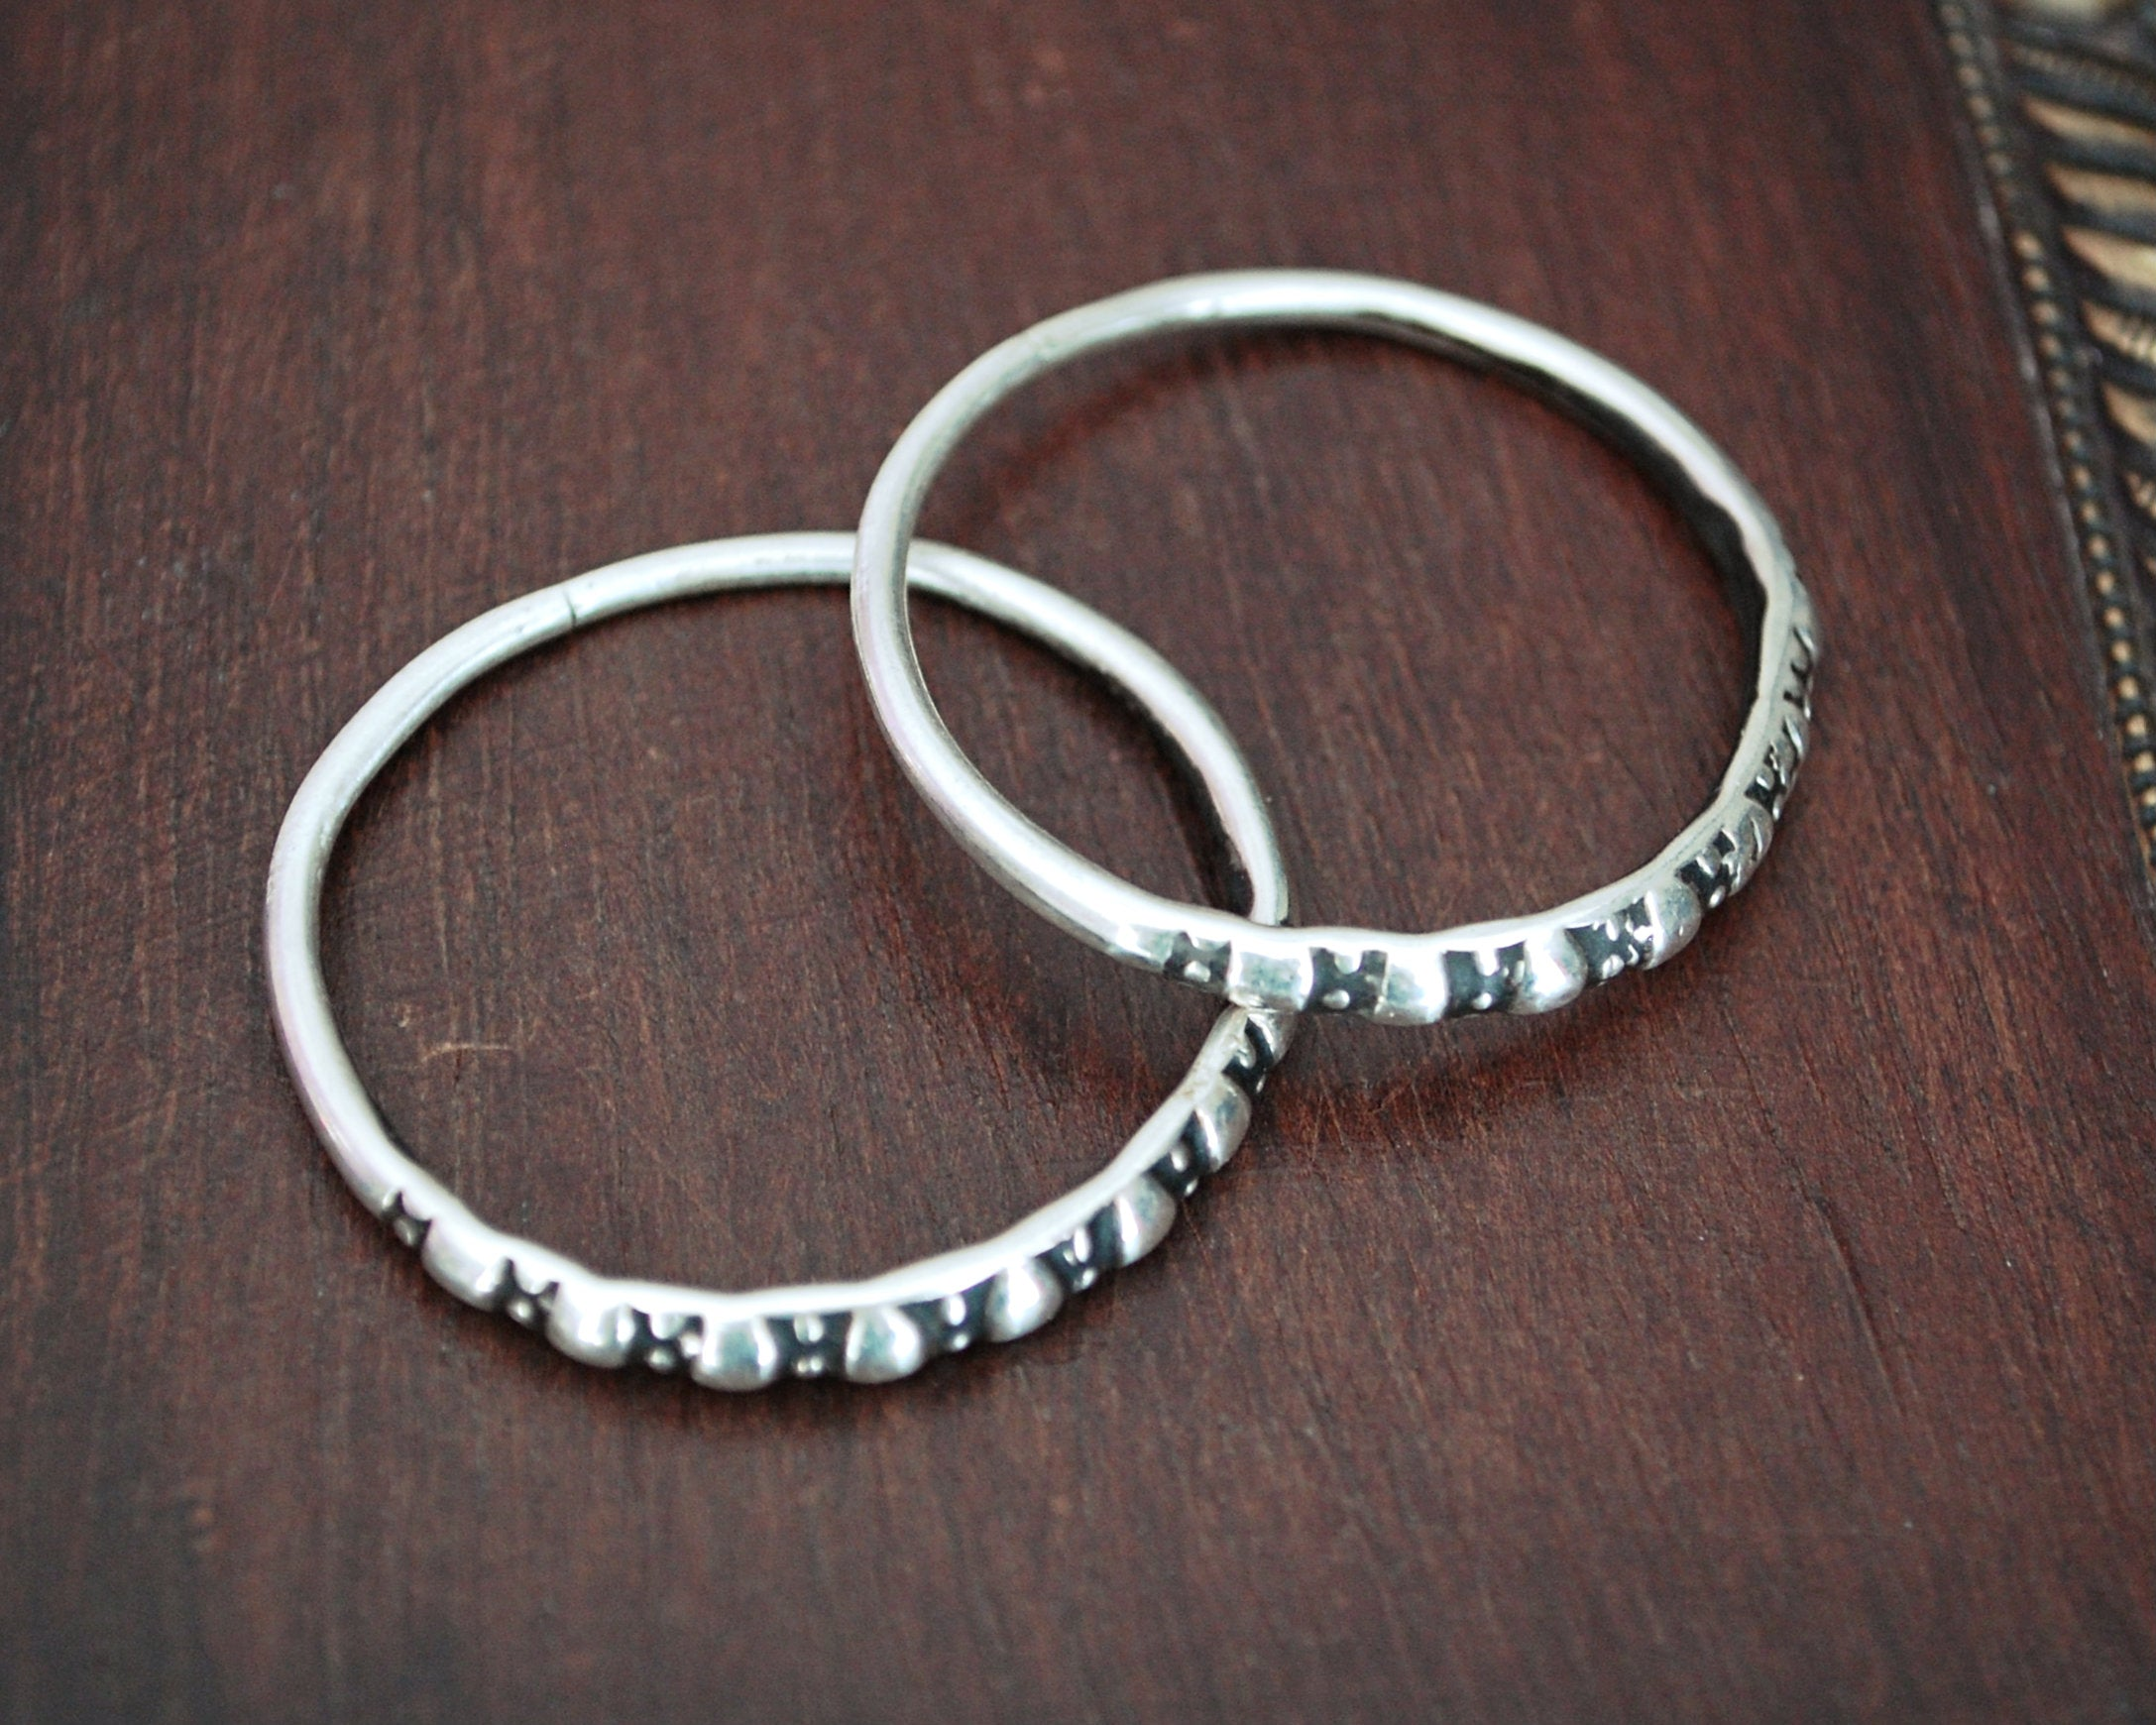 Afghani Hoop Earrings - Old Style